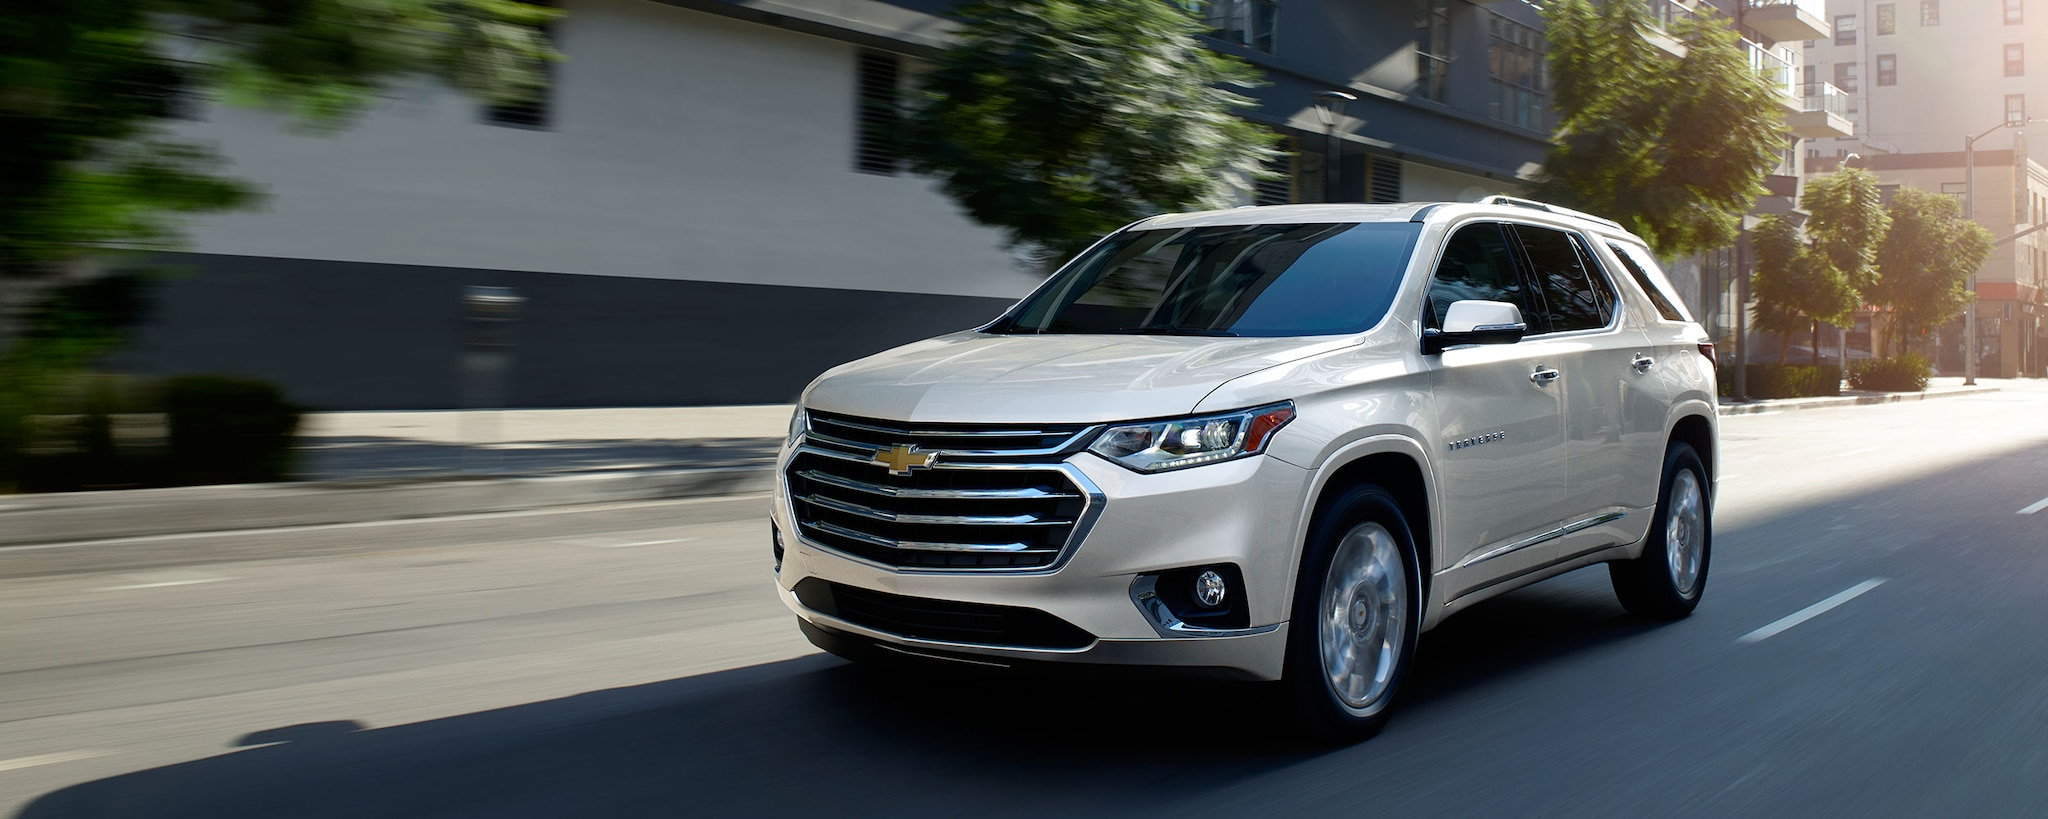 SUV mediana Chevrolet Traverse 2019